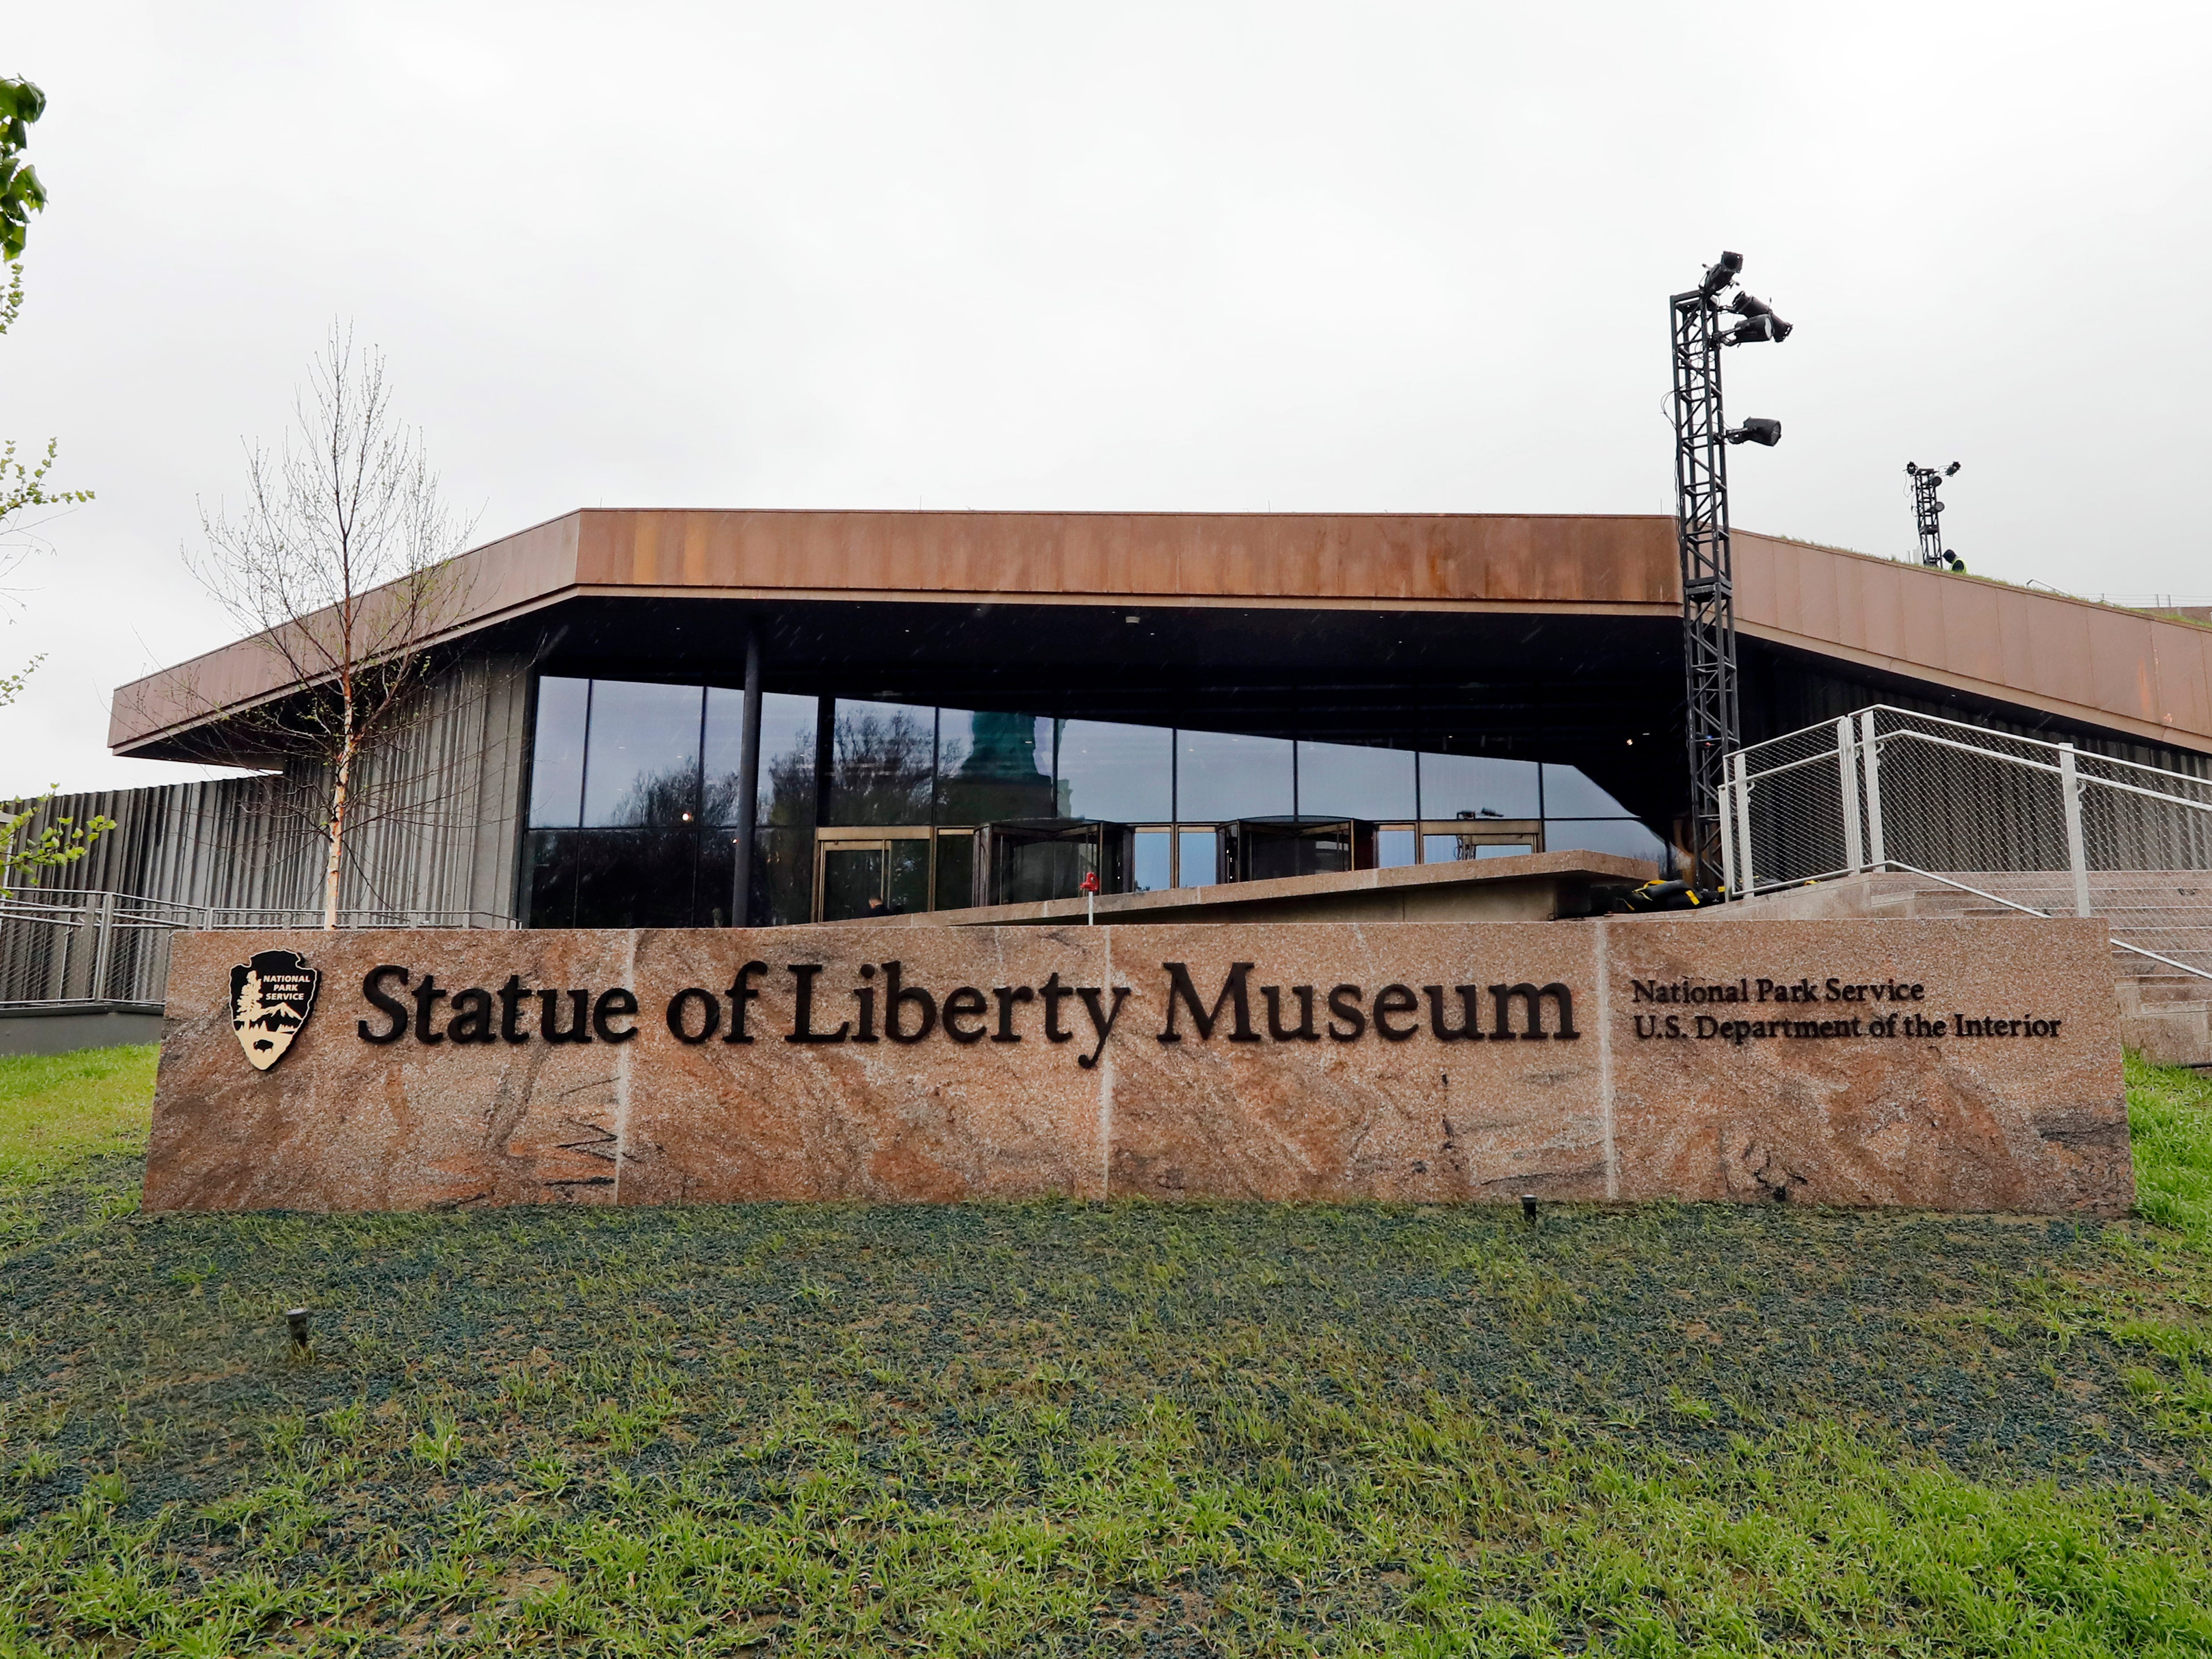 A new, 26,000-square-foot museum near the Statue of Liberty on Liberty Island in New York City is scheduled to open to the public on Thursday. It is the new home for the statue's original torch and other artifacts, which had previously been in a smaller museum space inside the statue's pedestal.